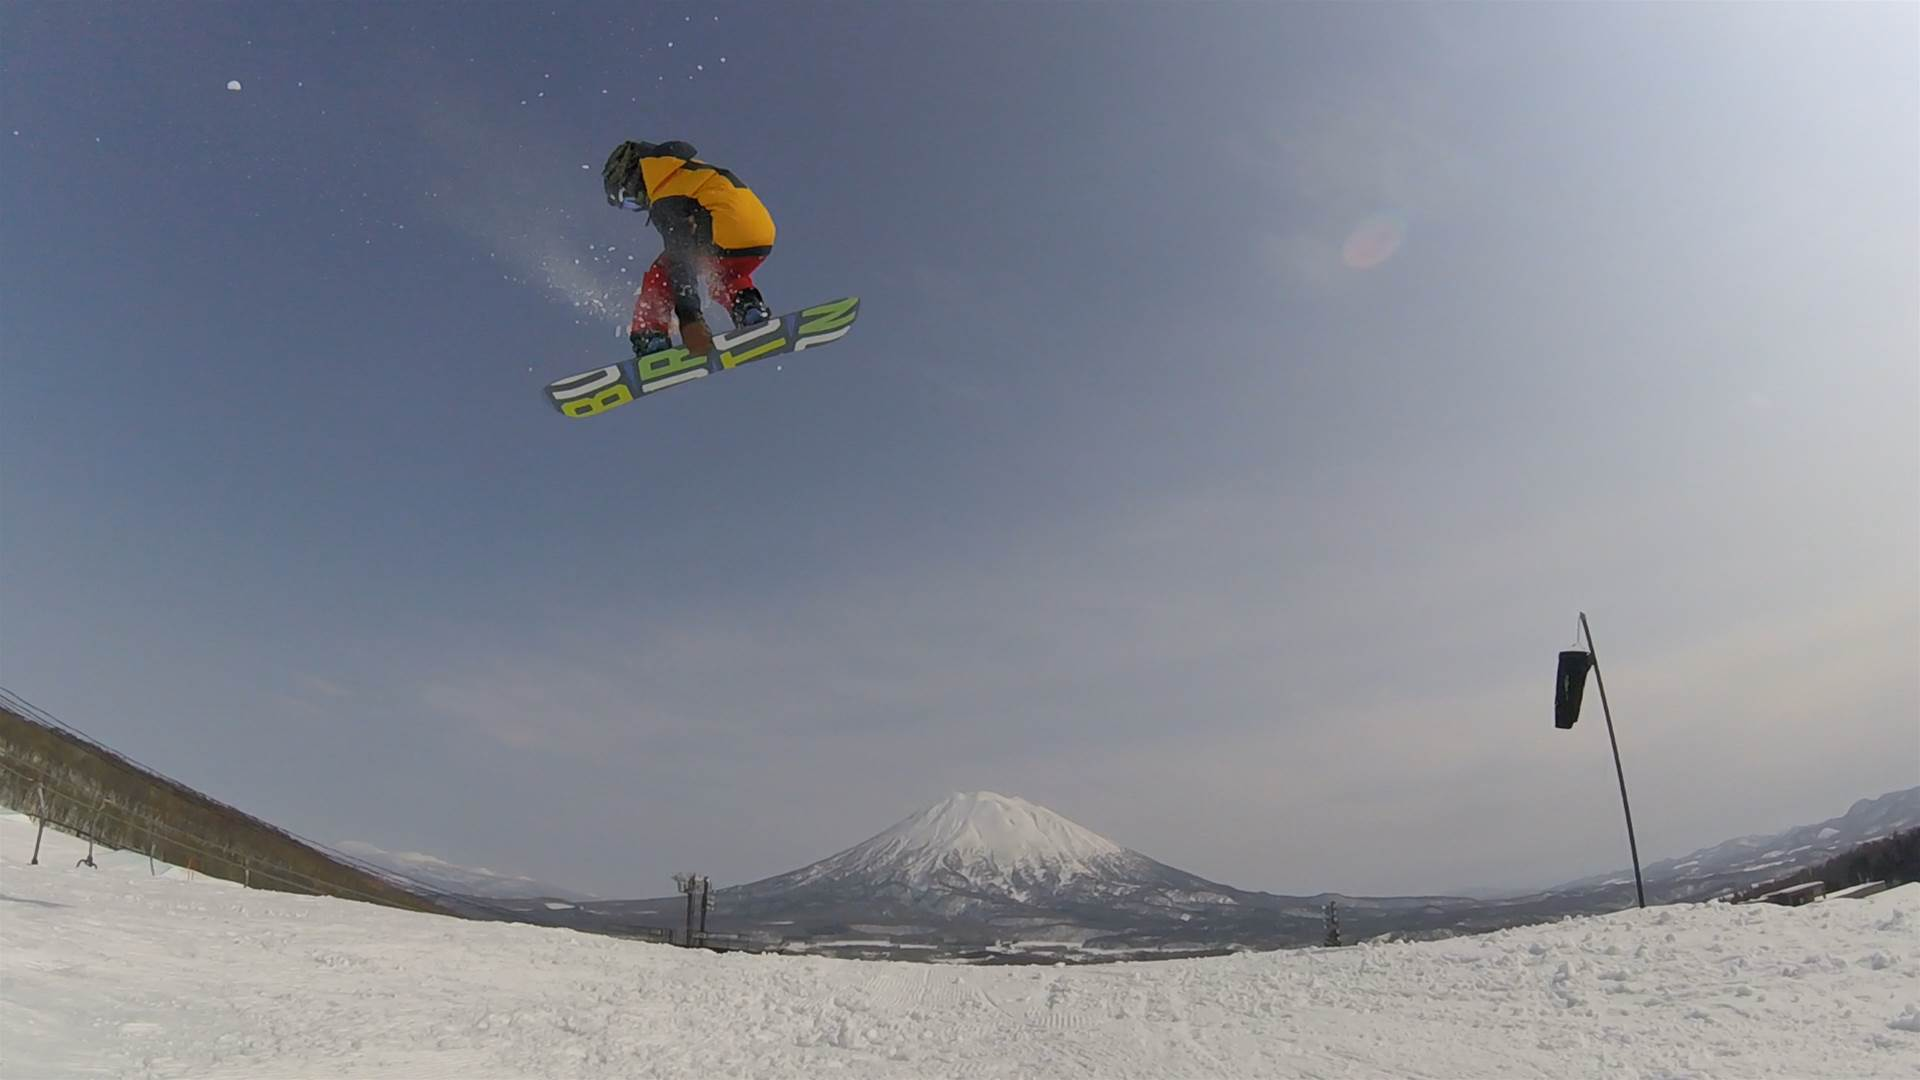 Jesse Parkinson 11yrs Old — Japan 2016/17